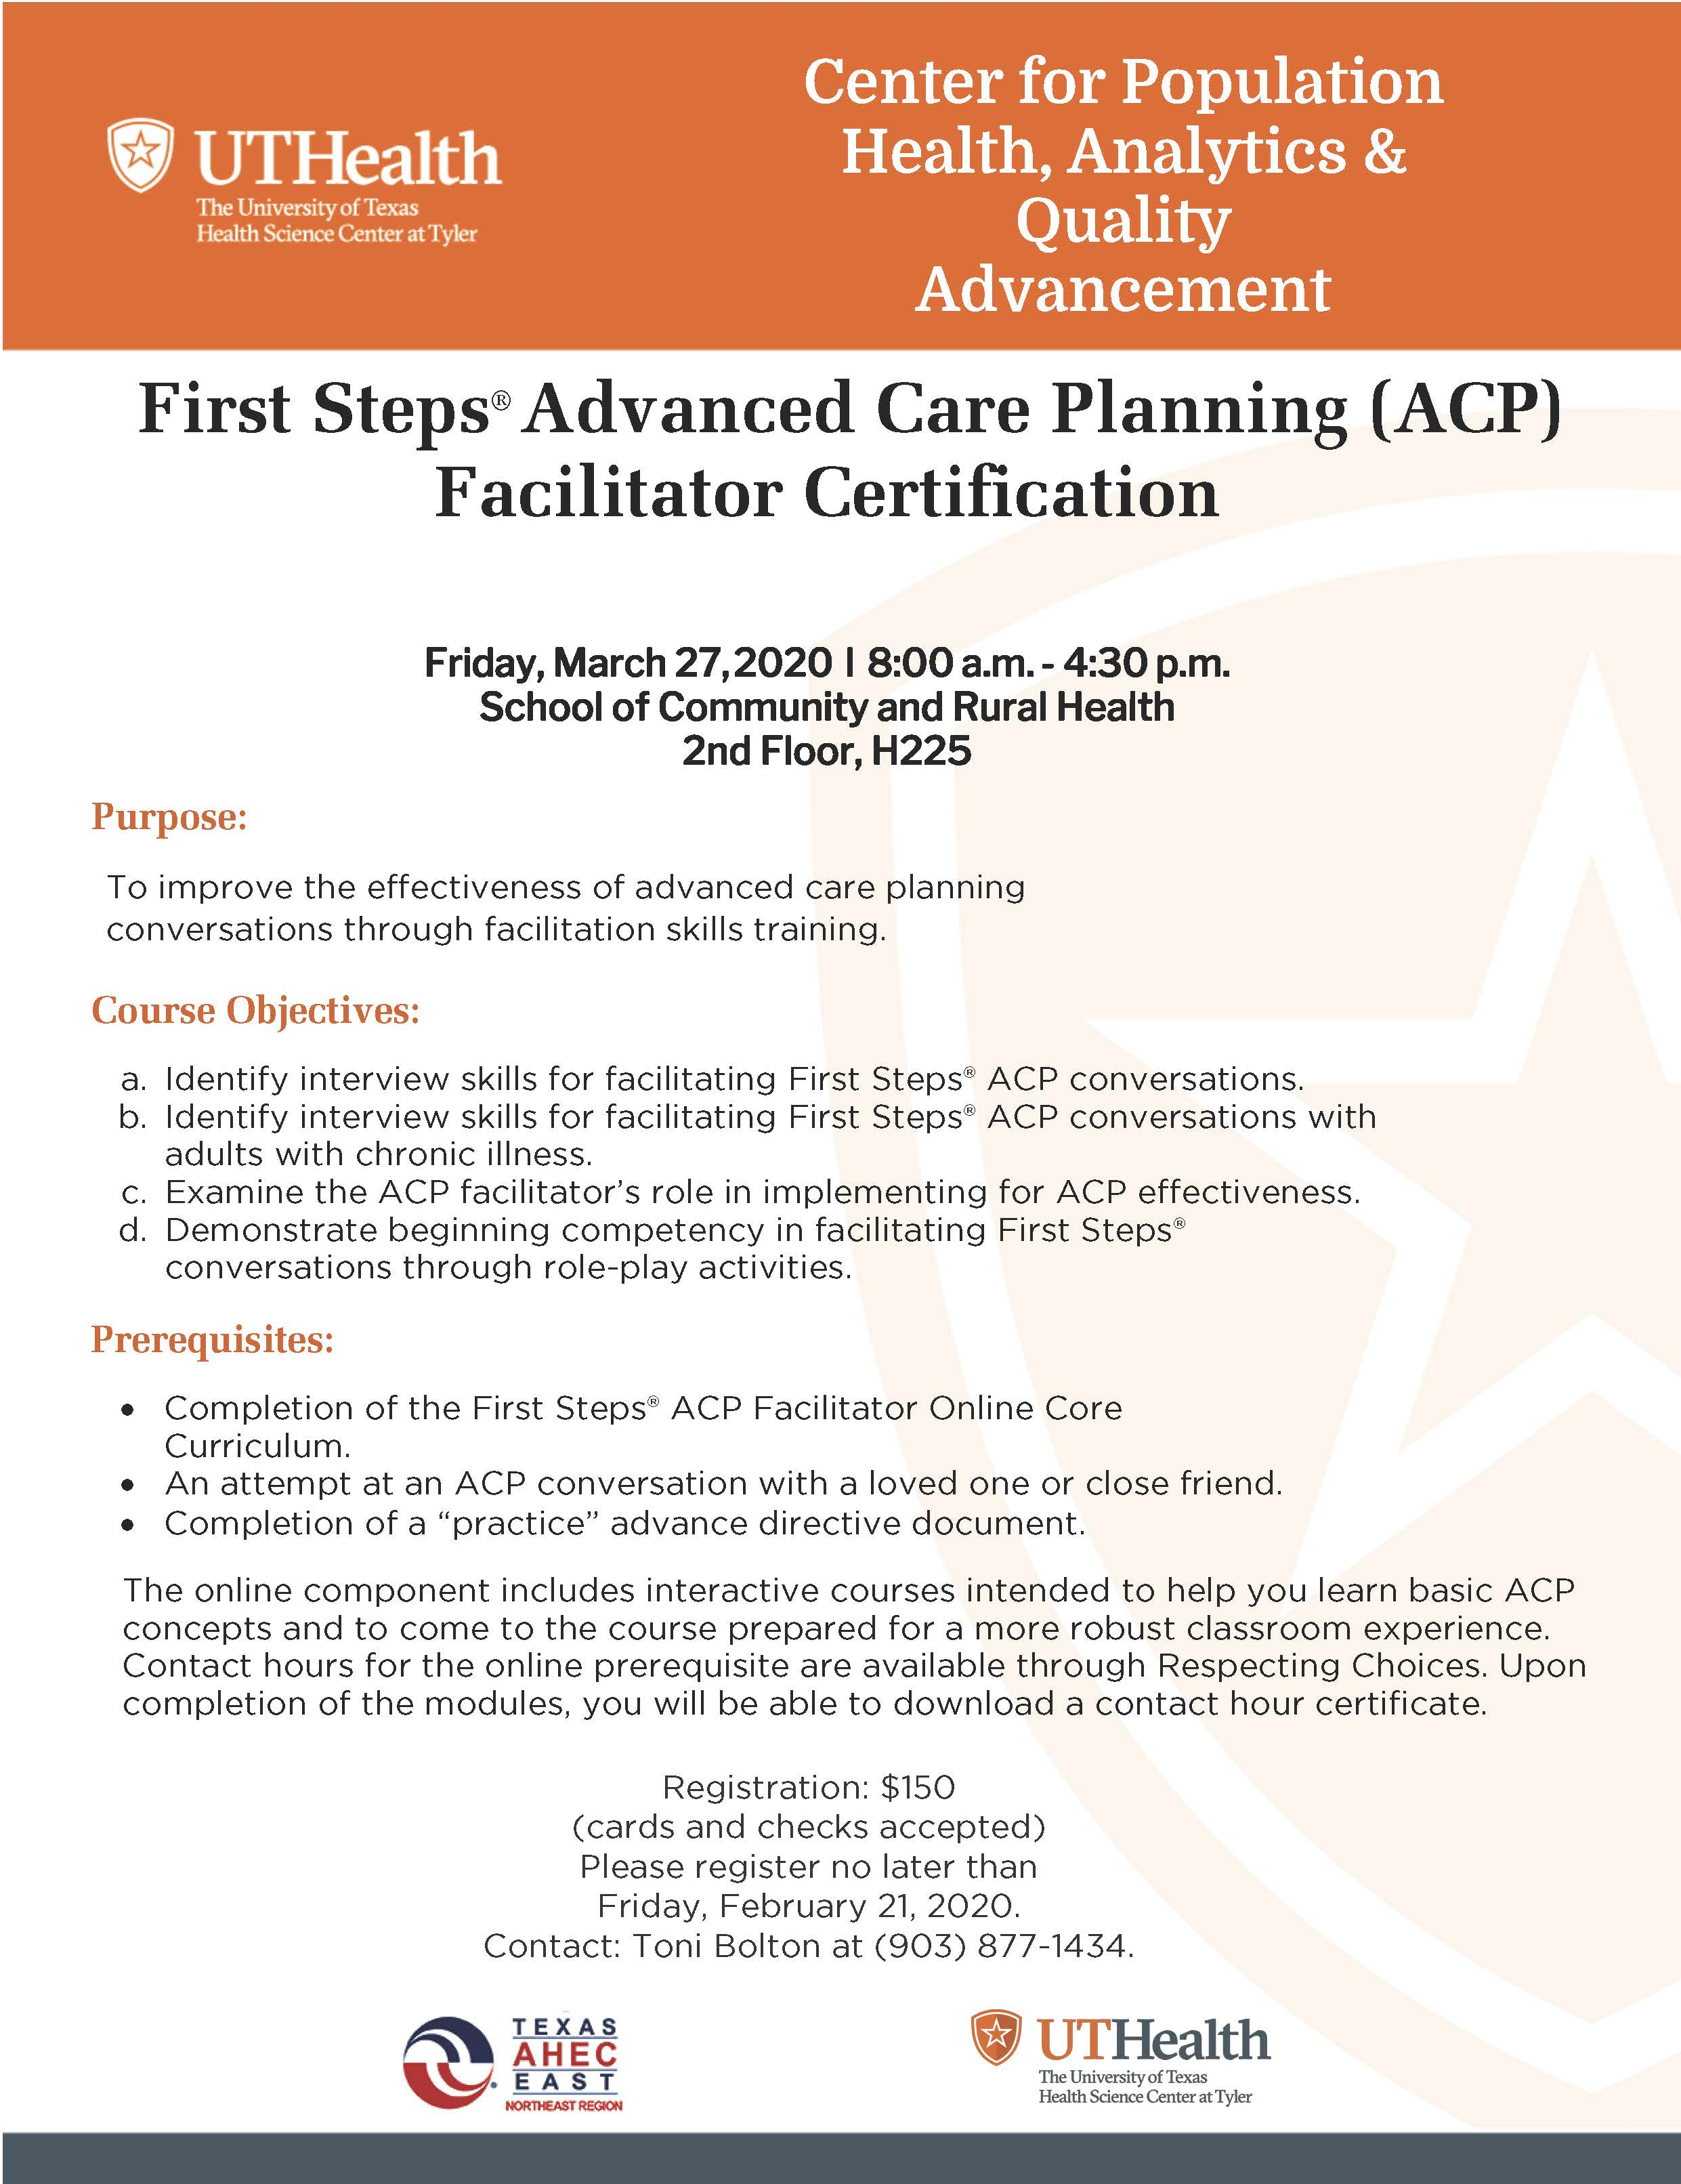 First Steps Advanced Care Planning (ACP) Facilitator Certification